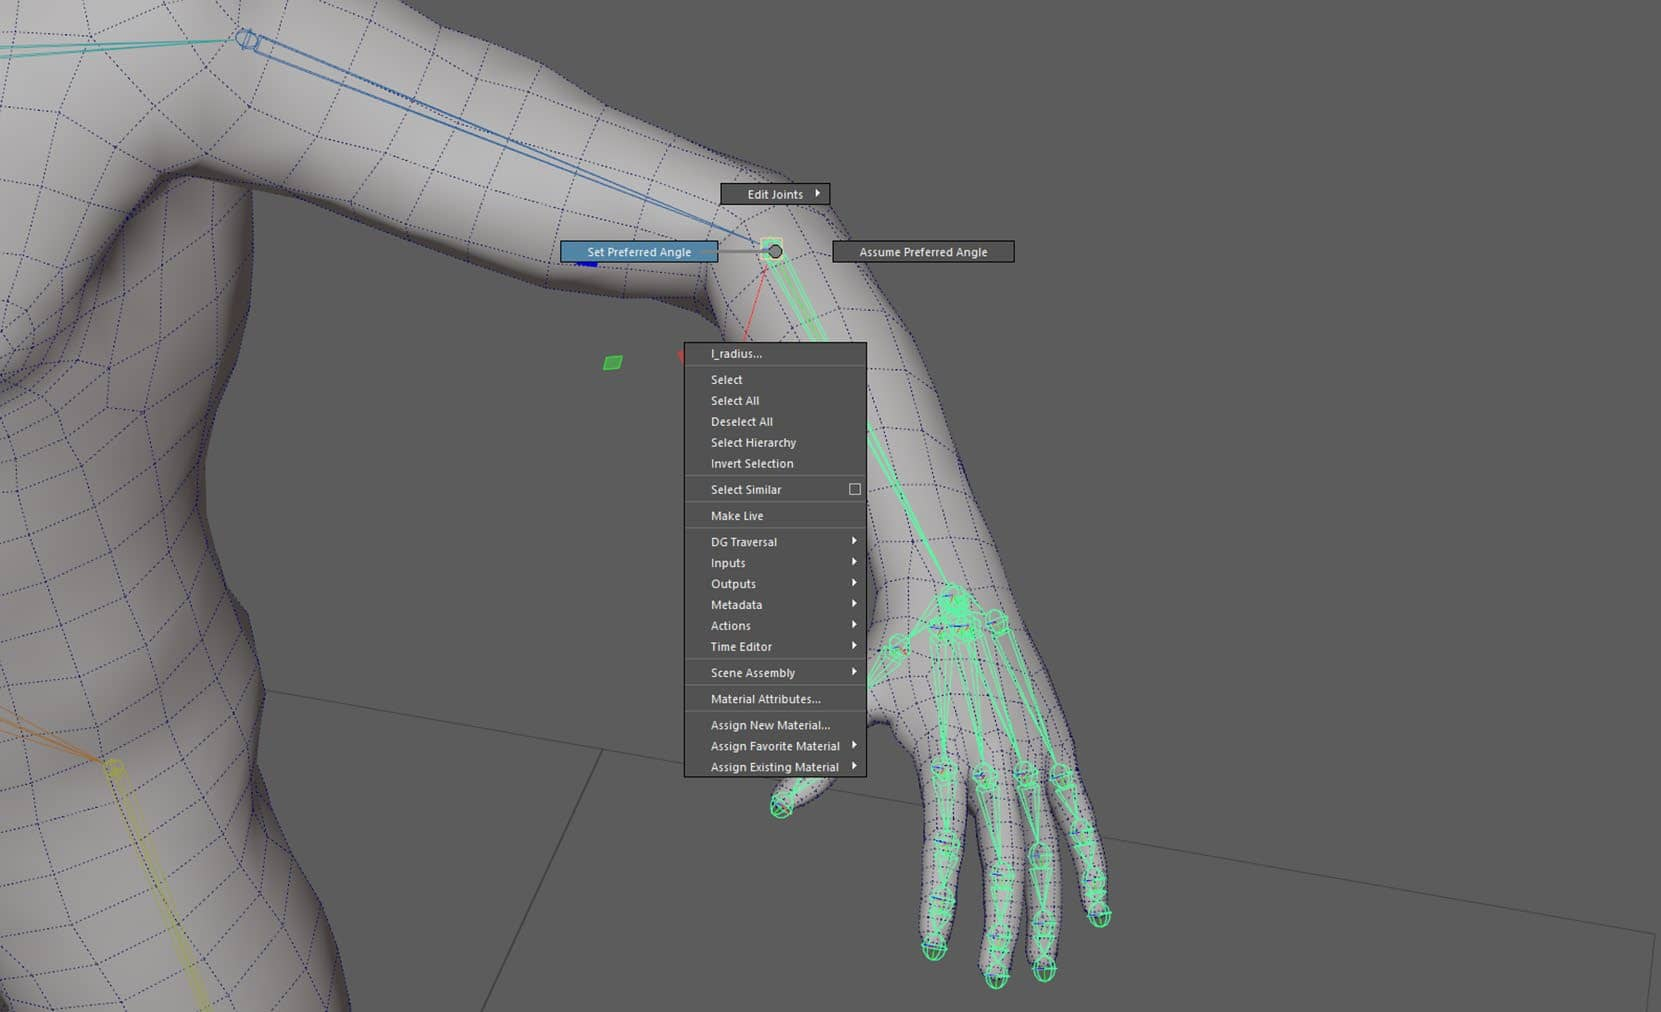 IS THERE A WAY TO STOP MY JOINTS BENDING IN THE WRONG DIRECTION?